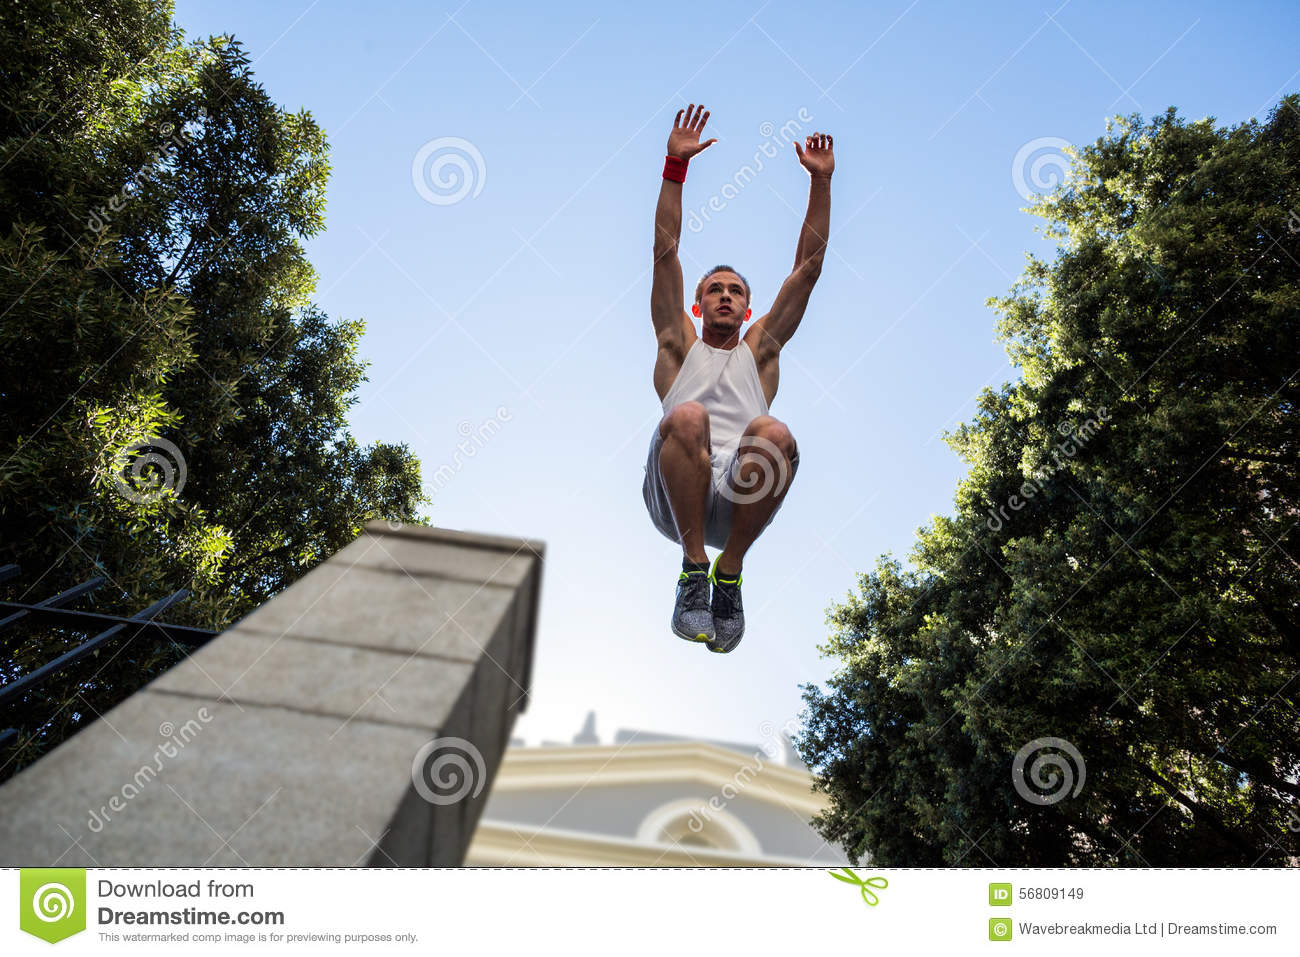 extreme athlete jumping in the air in front of a building stock